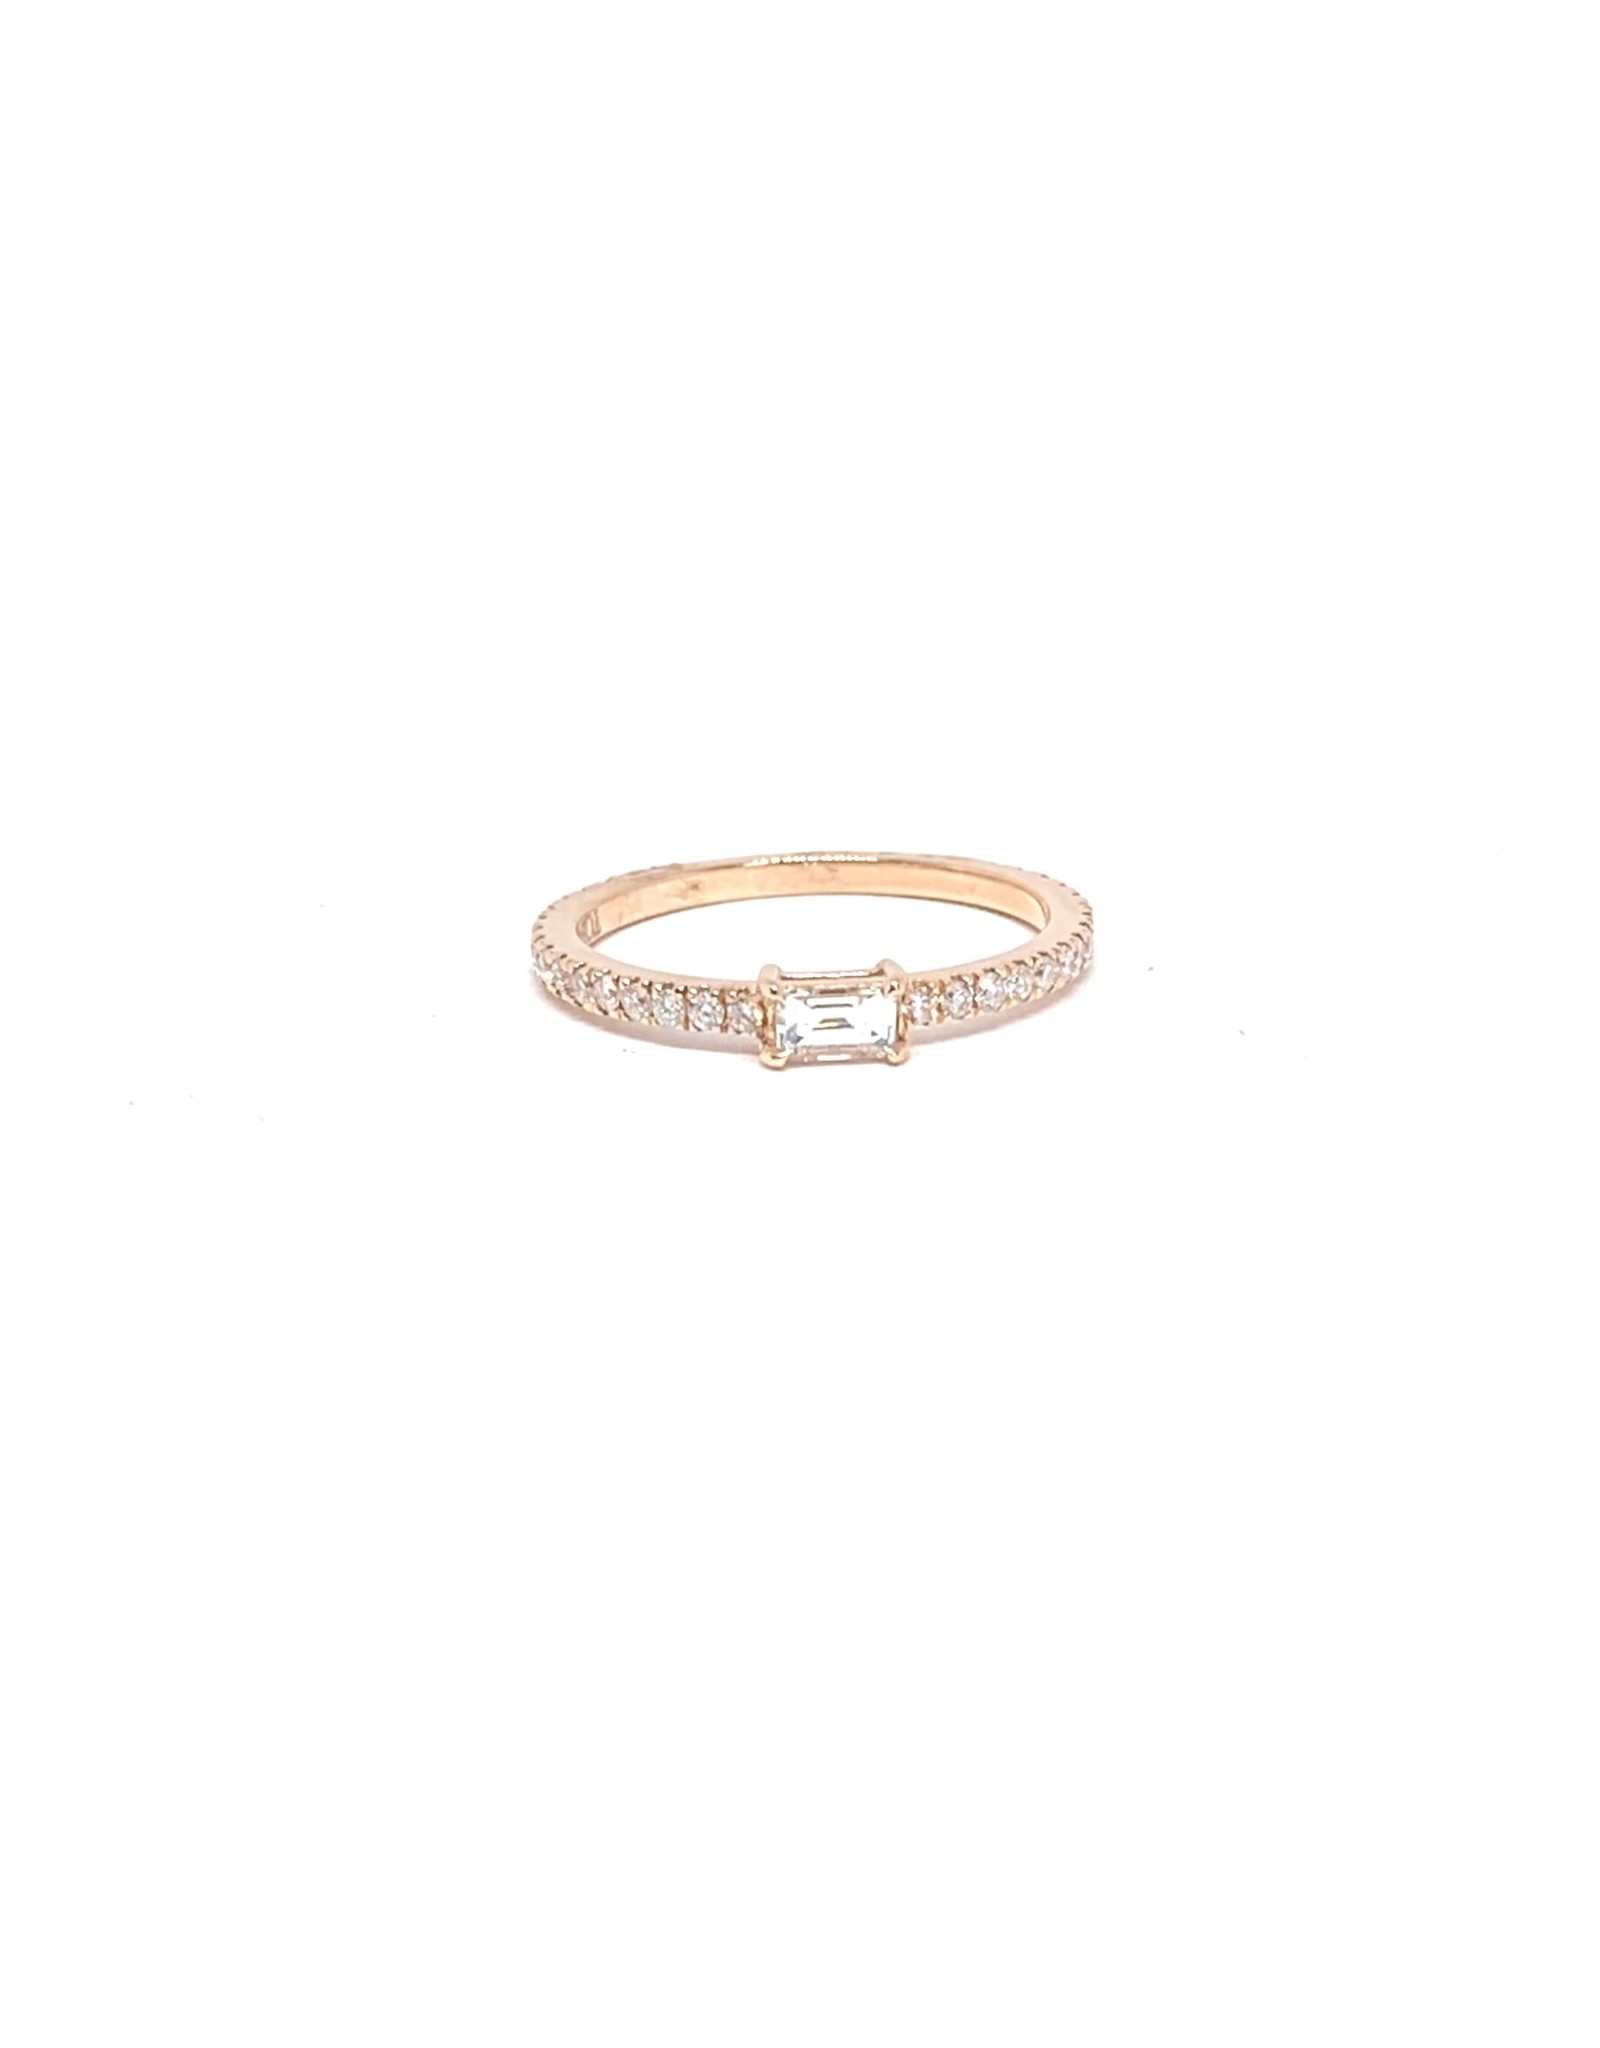 PARÉ Bague solitaire Or rose 14K avec diamants